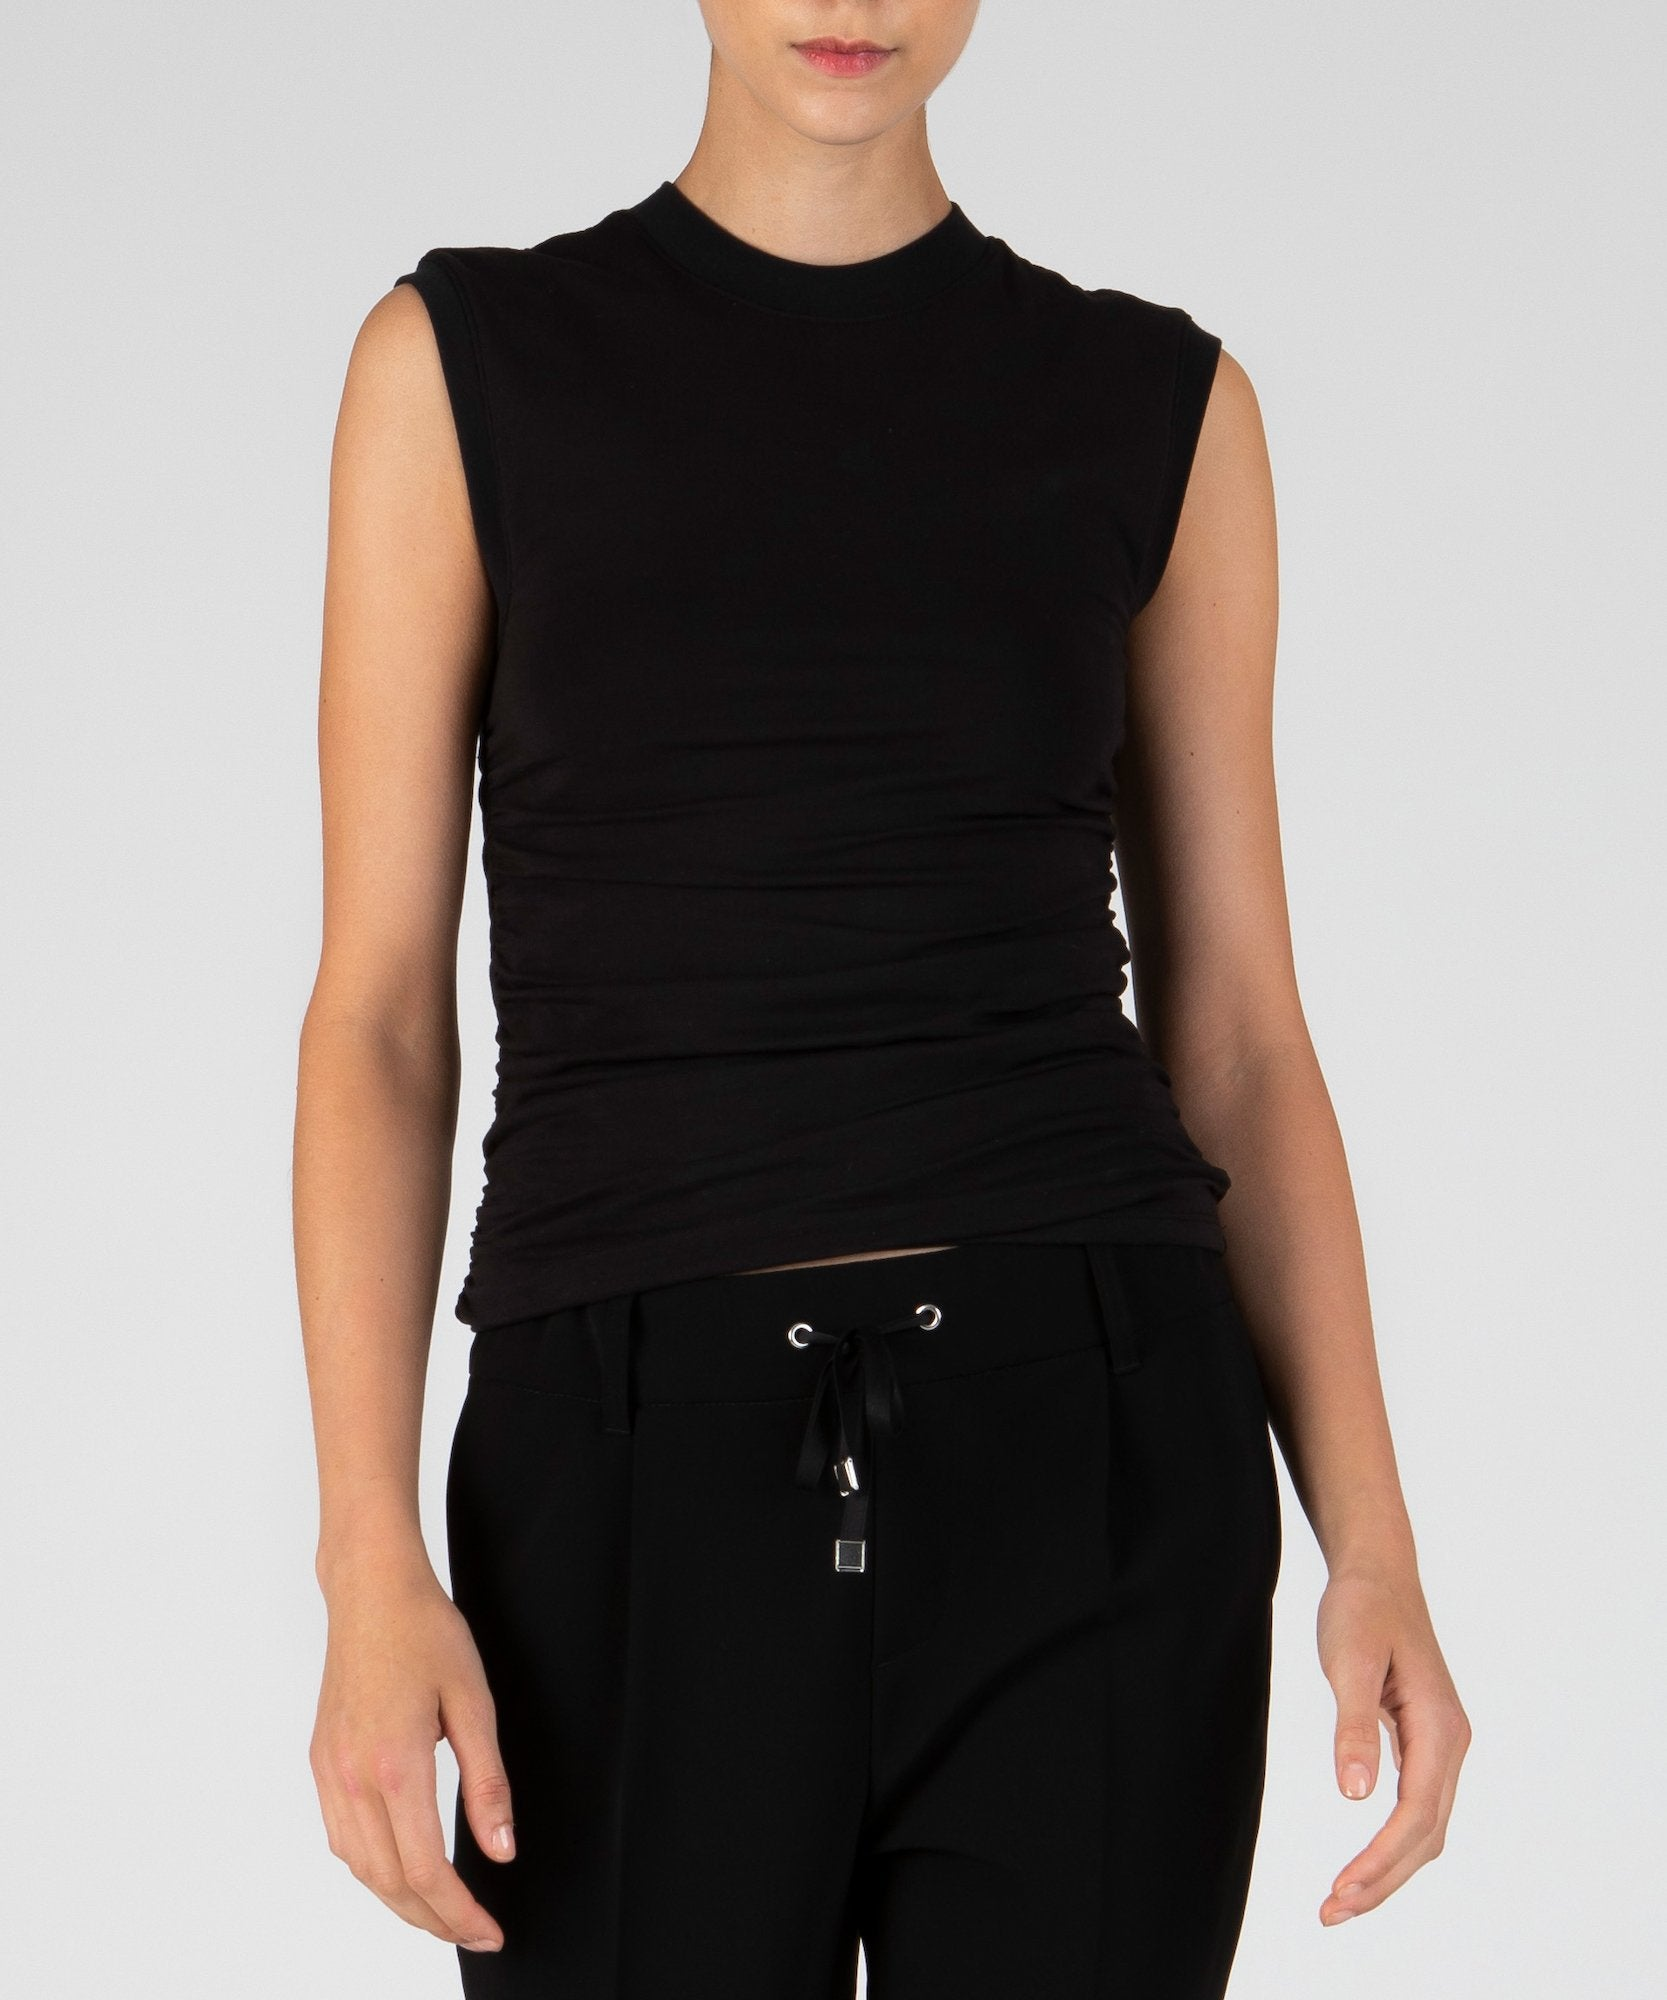 Black Pima Cotton Ruched Sleeveless Top - Women's Cotton Top by ATM Anthony Thomas Melillo